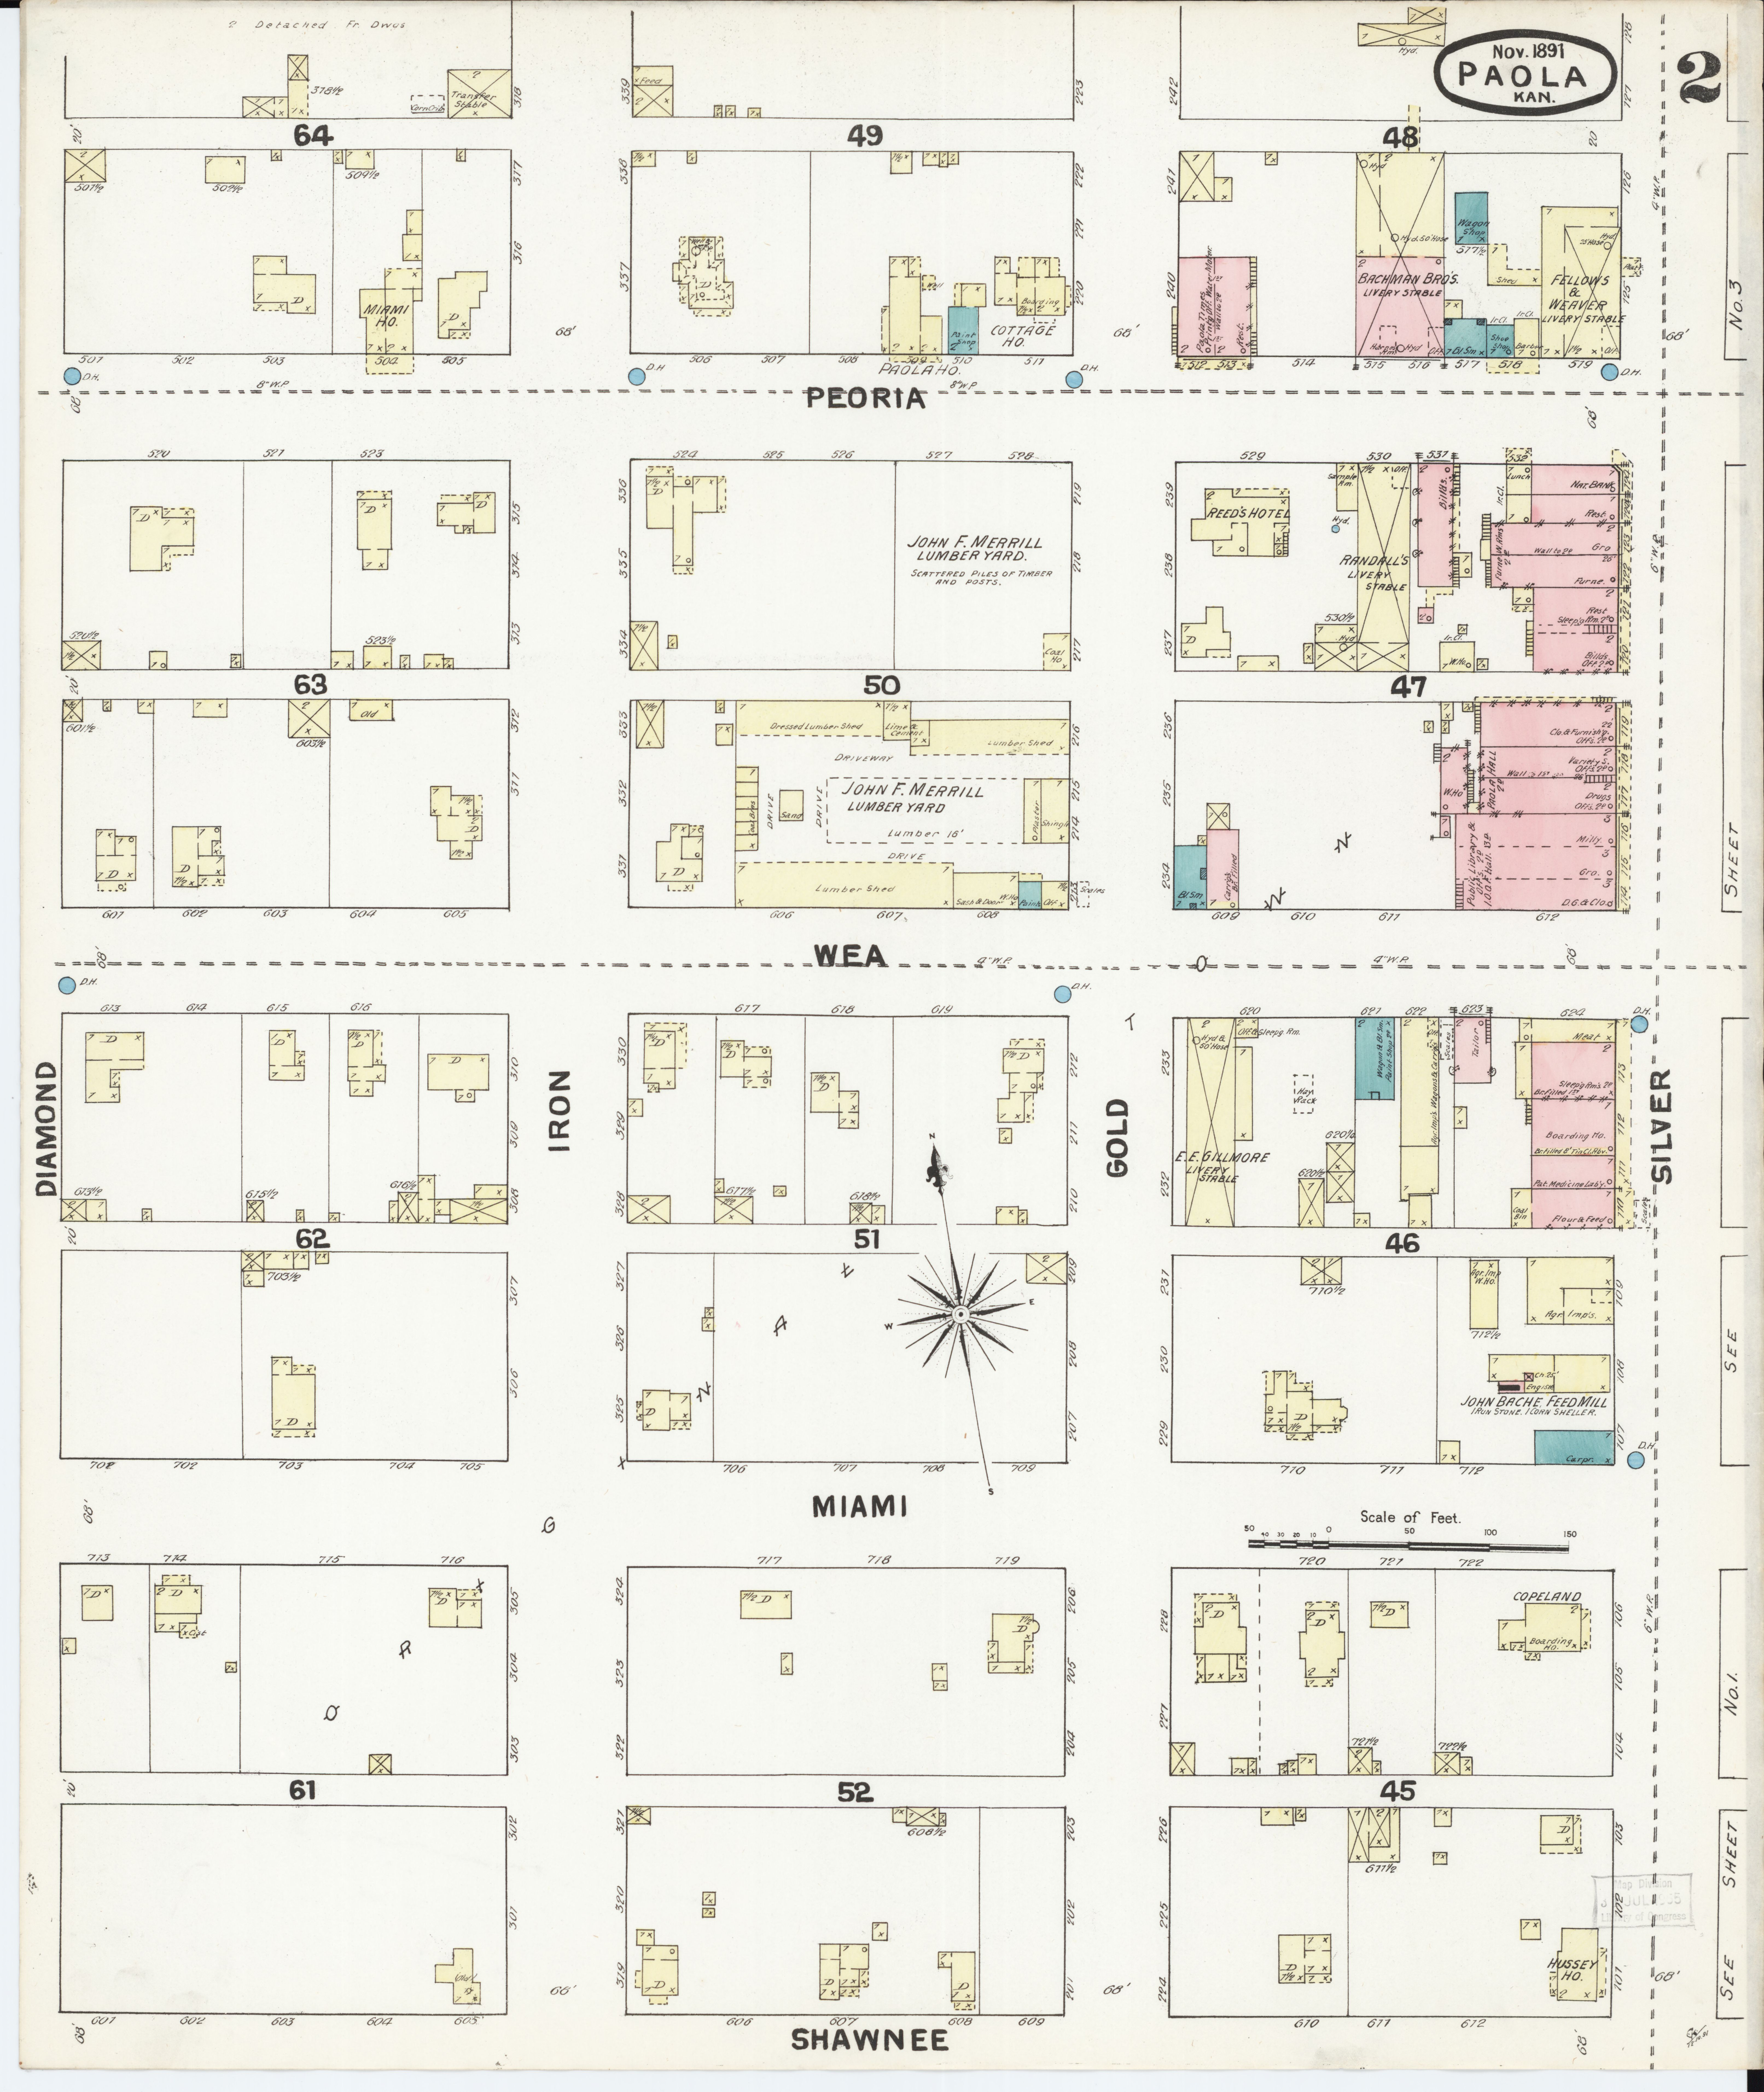 file:sanborn fire insurance map from paola, miami county